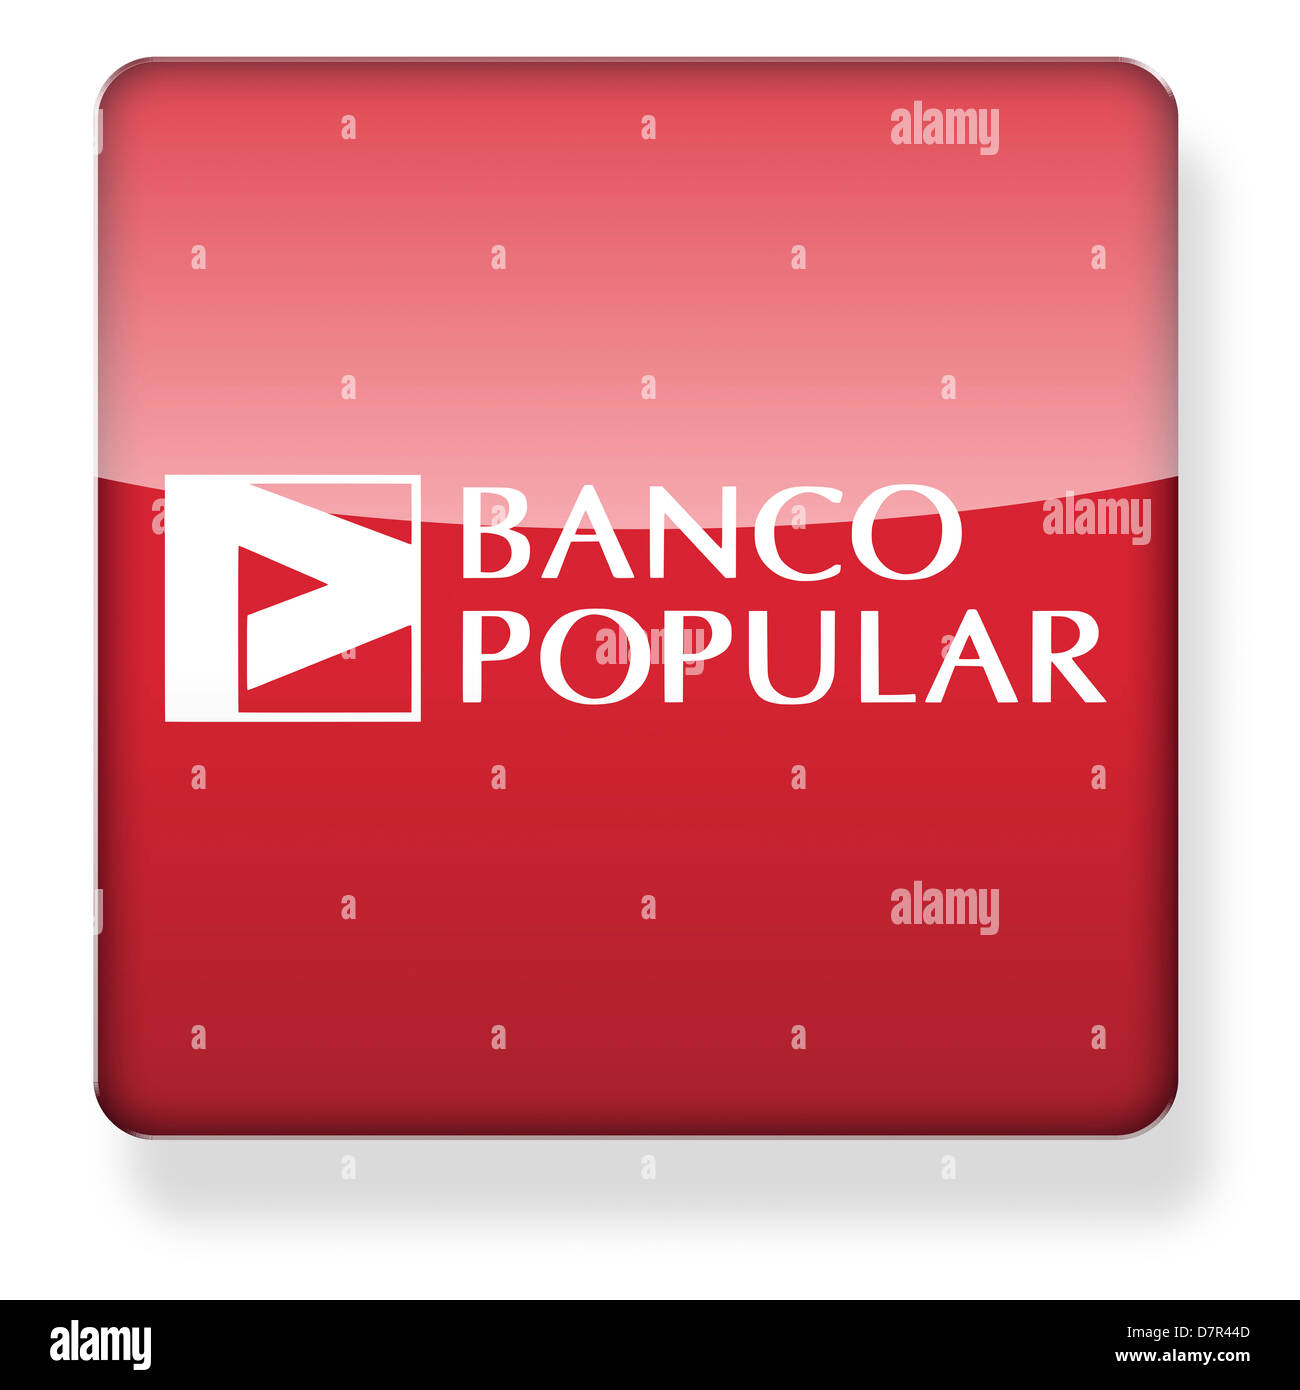 Banco Popular logo as an app icon. Clipping path included. - Stock Image